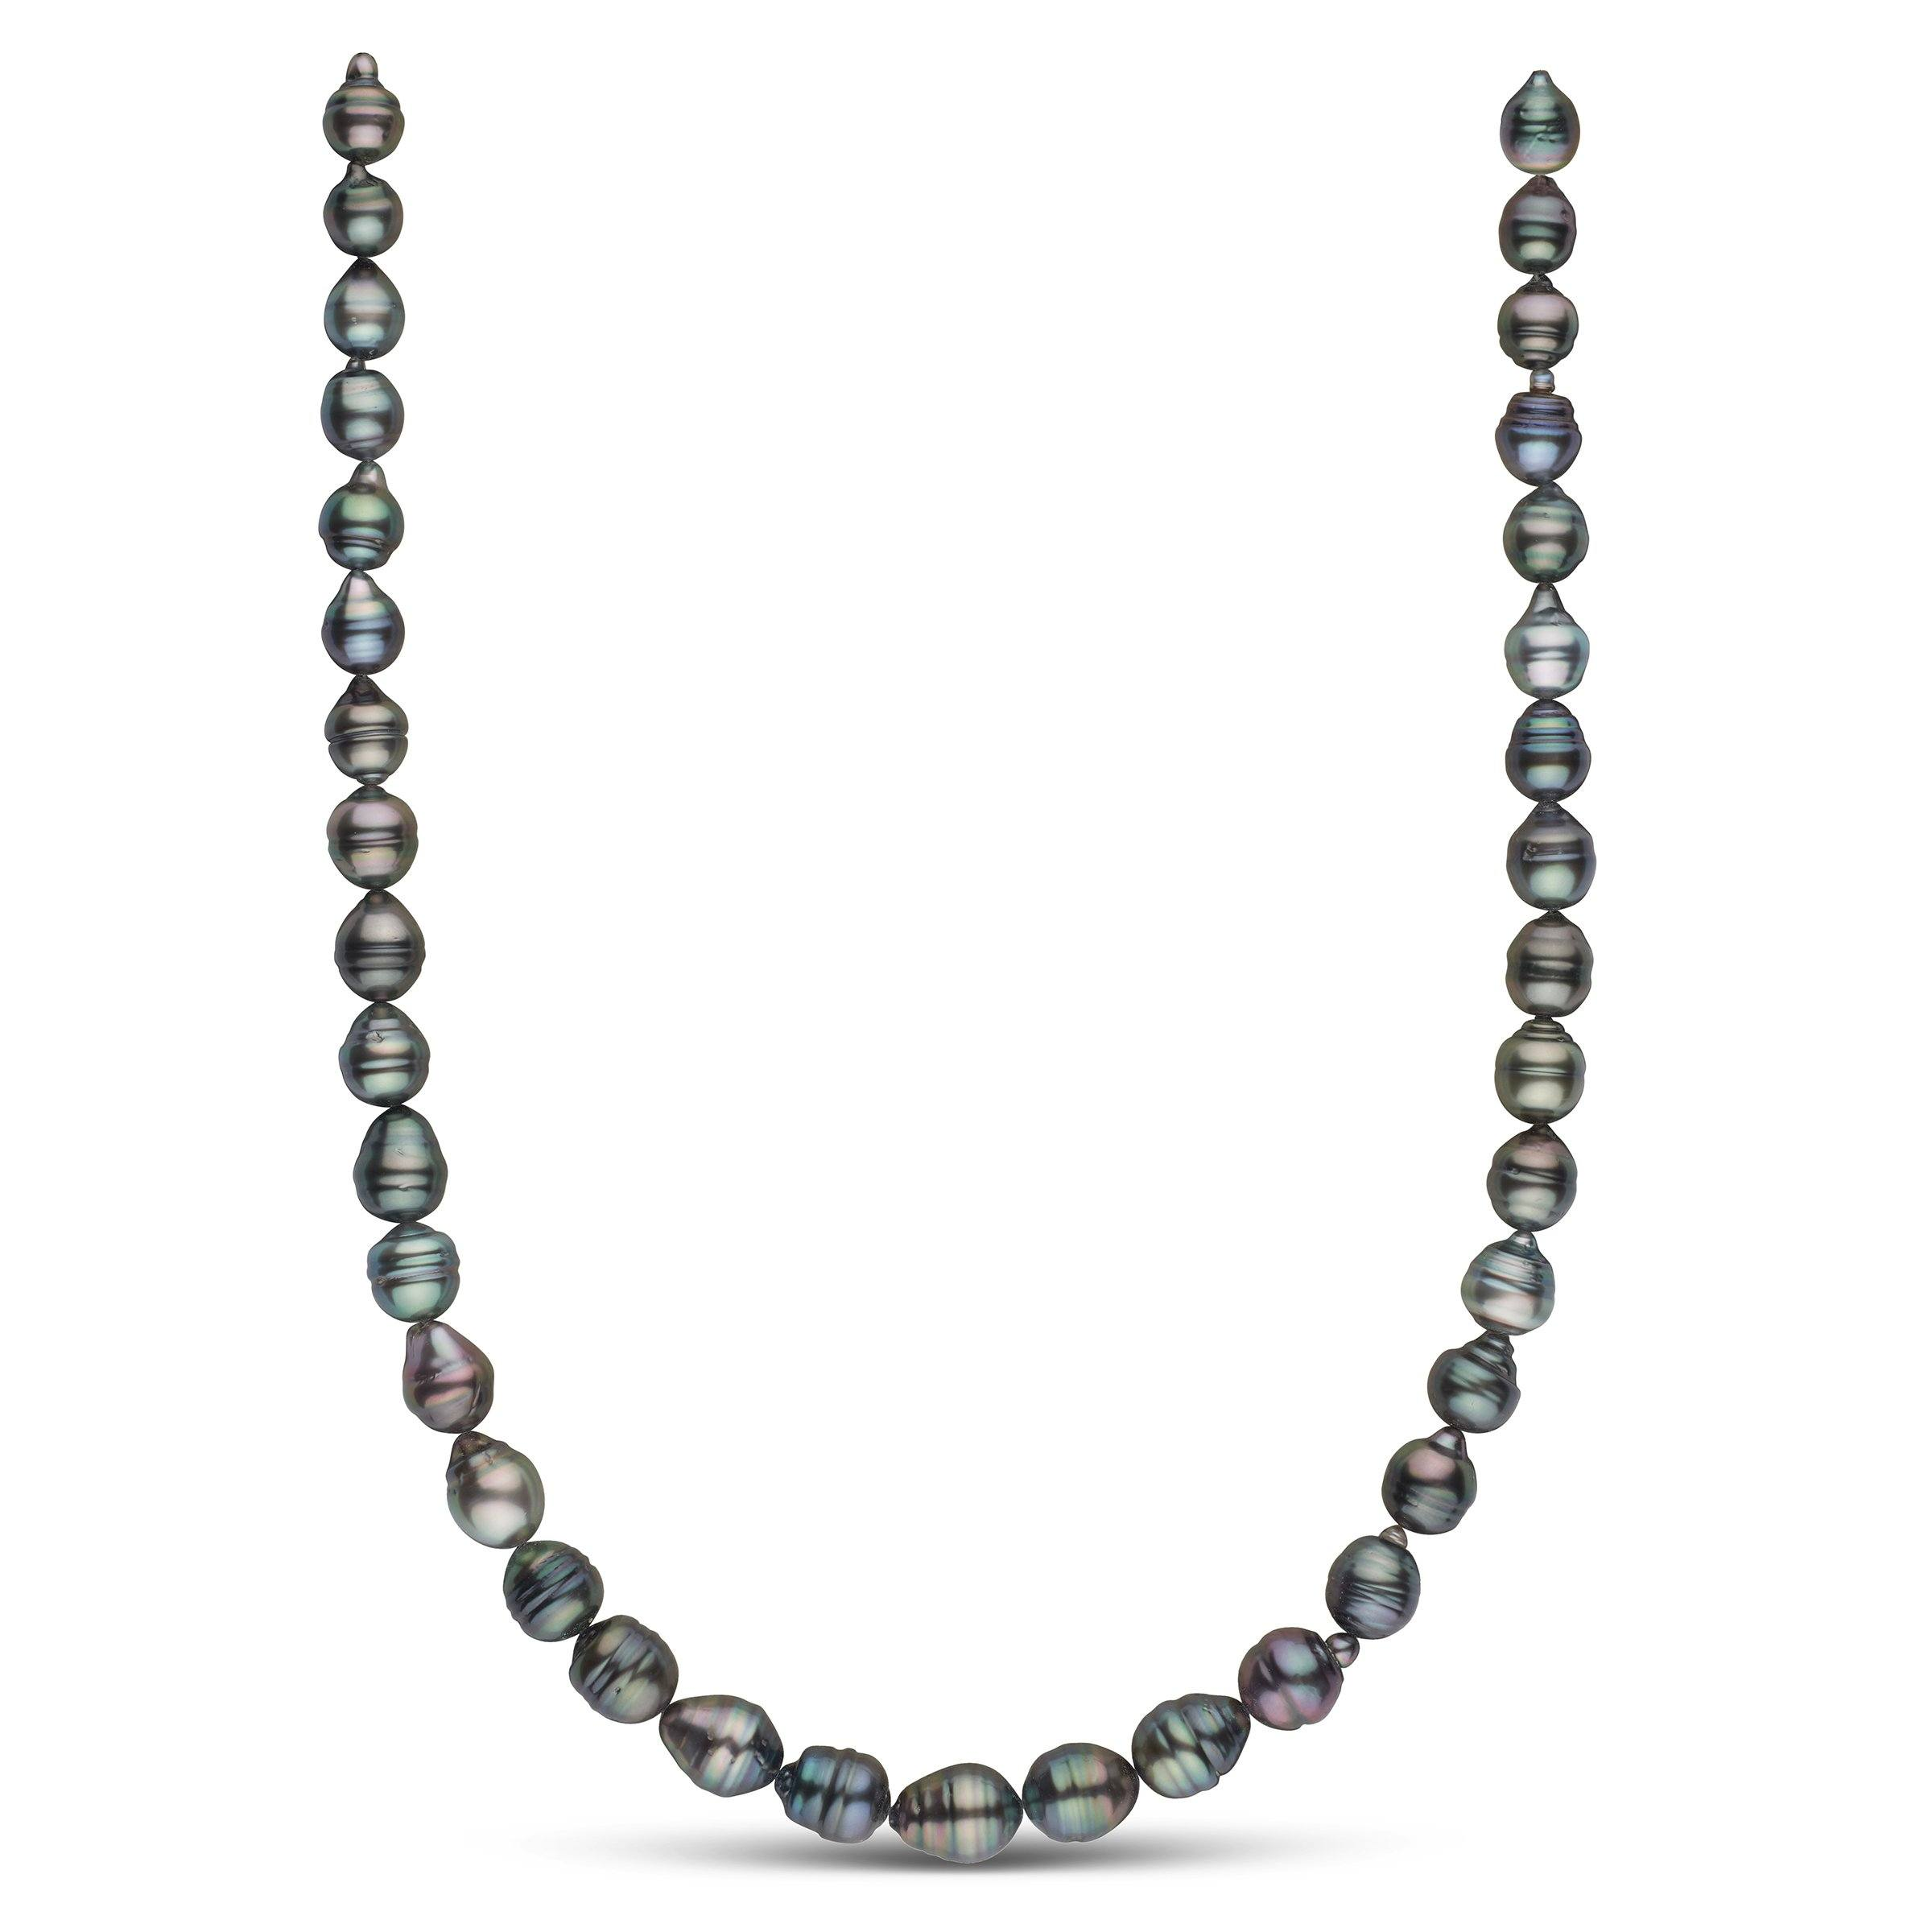 8.1-10.3 mm AA+ Tahitian Baroque Pearl Necklace